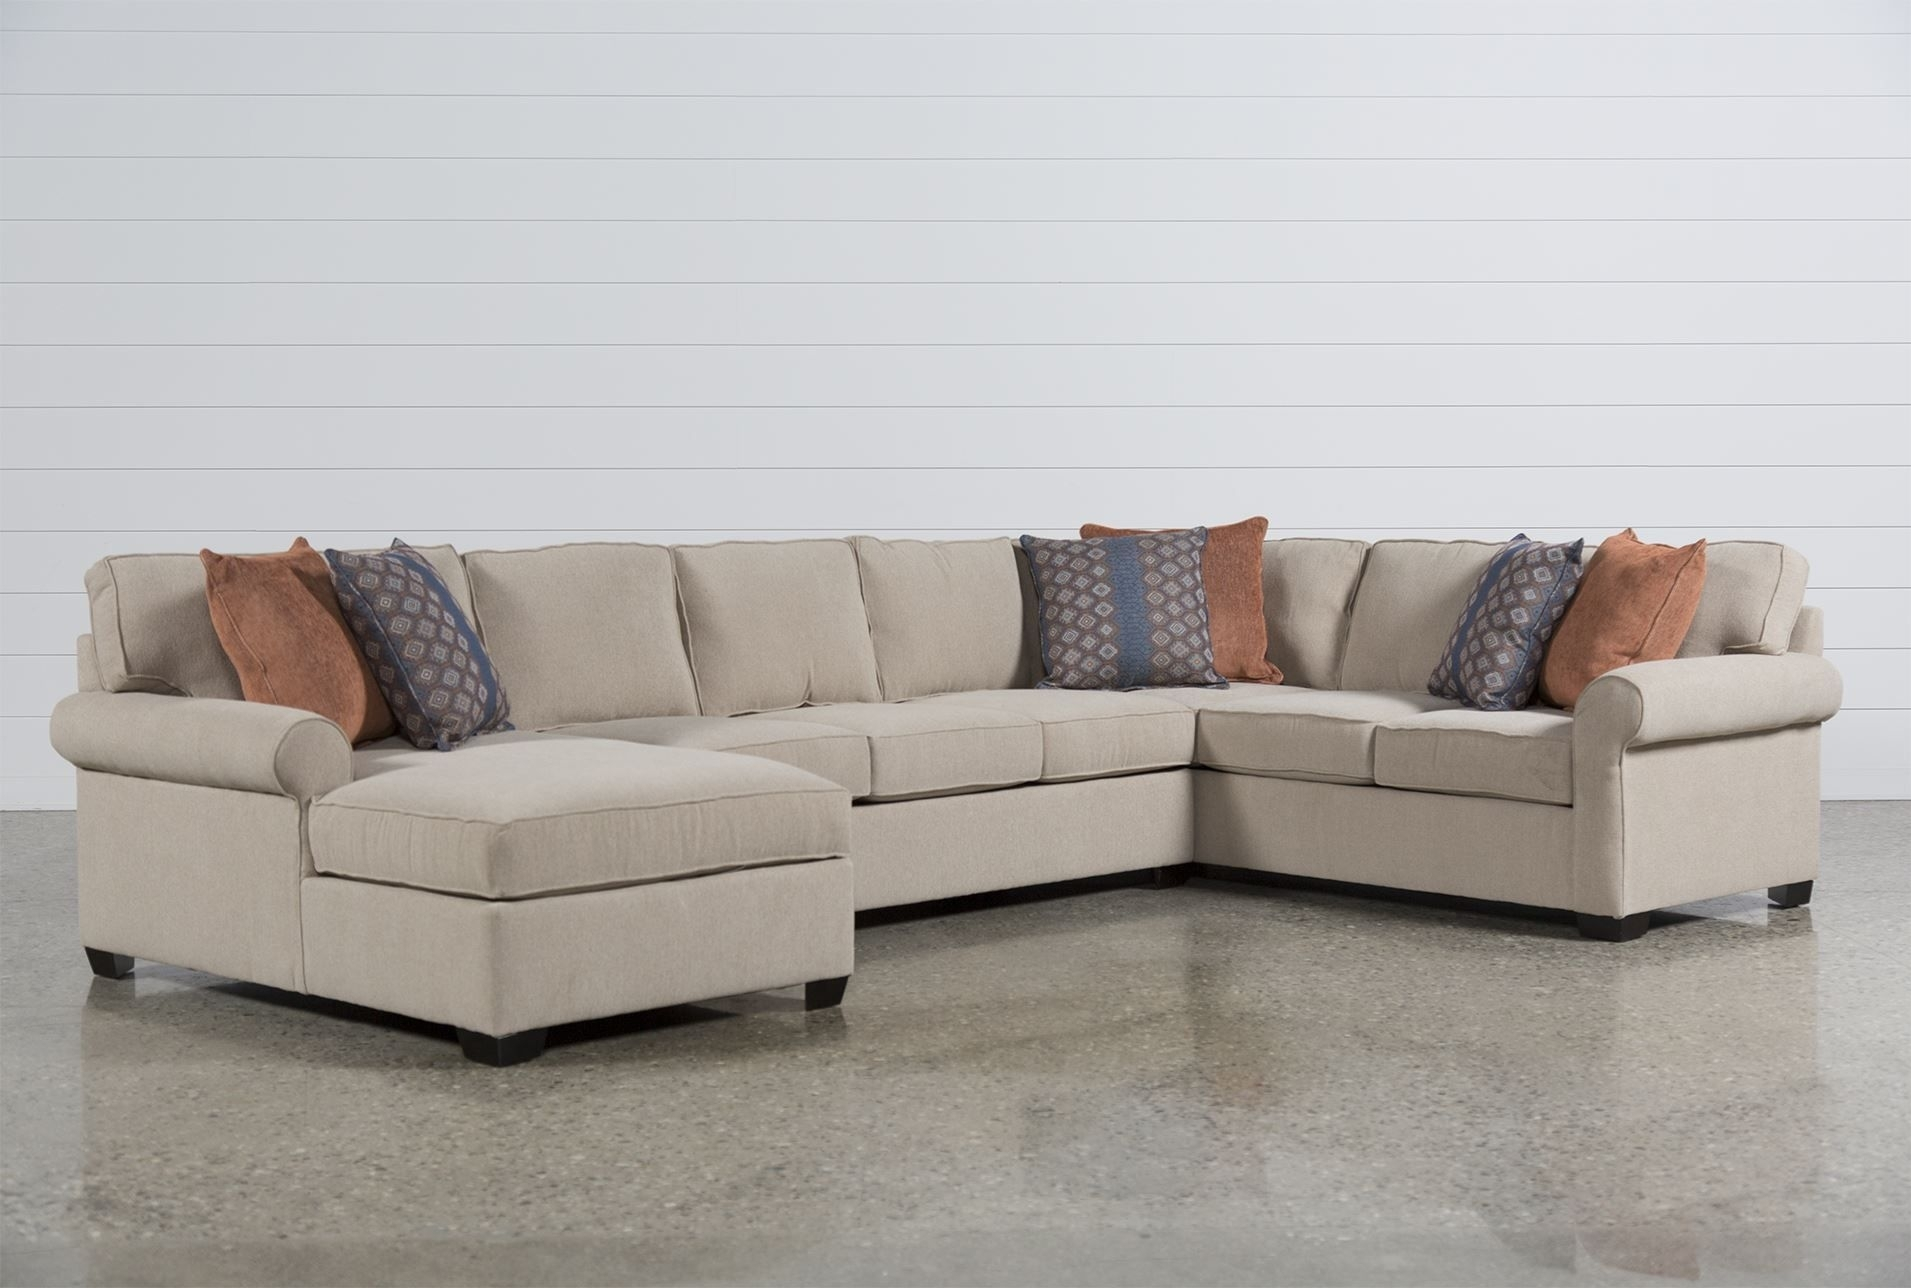 Camilla 3 Piece Sectional W/laf Chaise | Couches | Pinterest Throughout Meyer 3 Piece Sectionals With Laf Chaise (View 17 of 25)